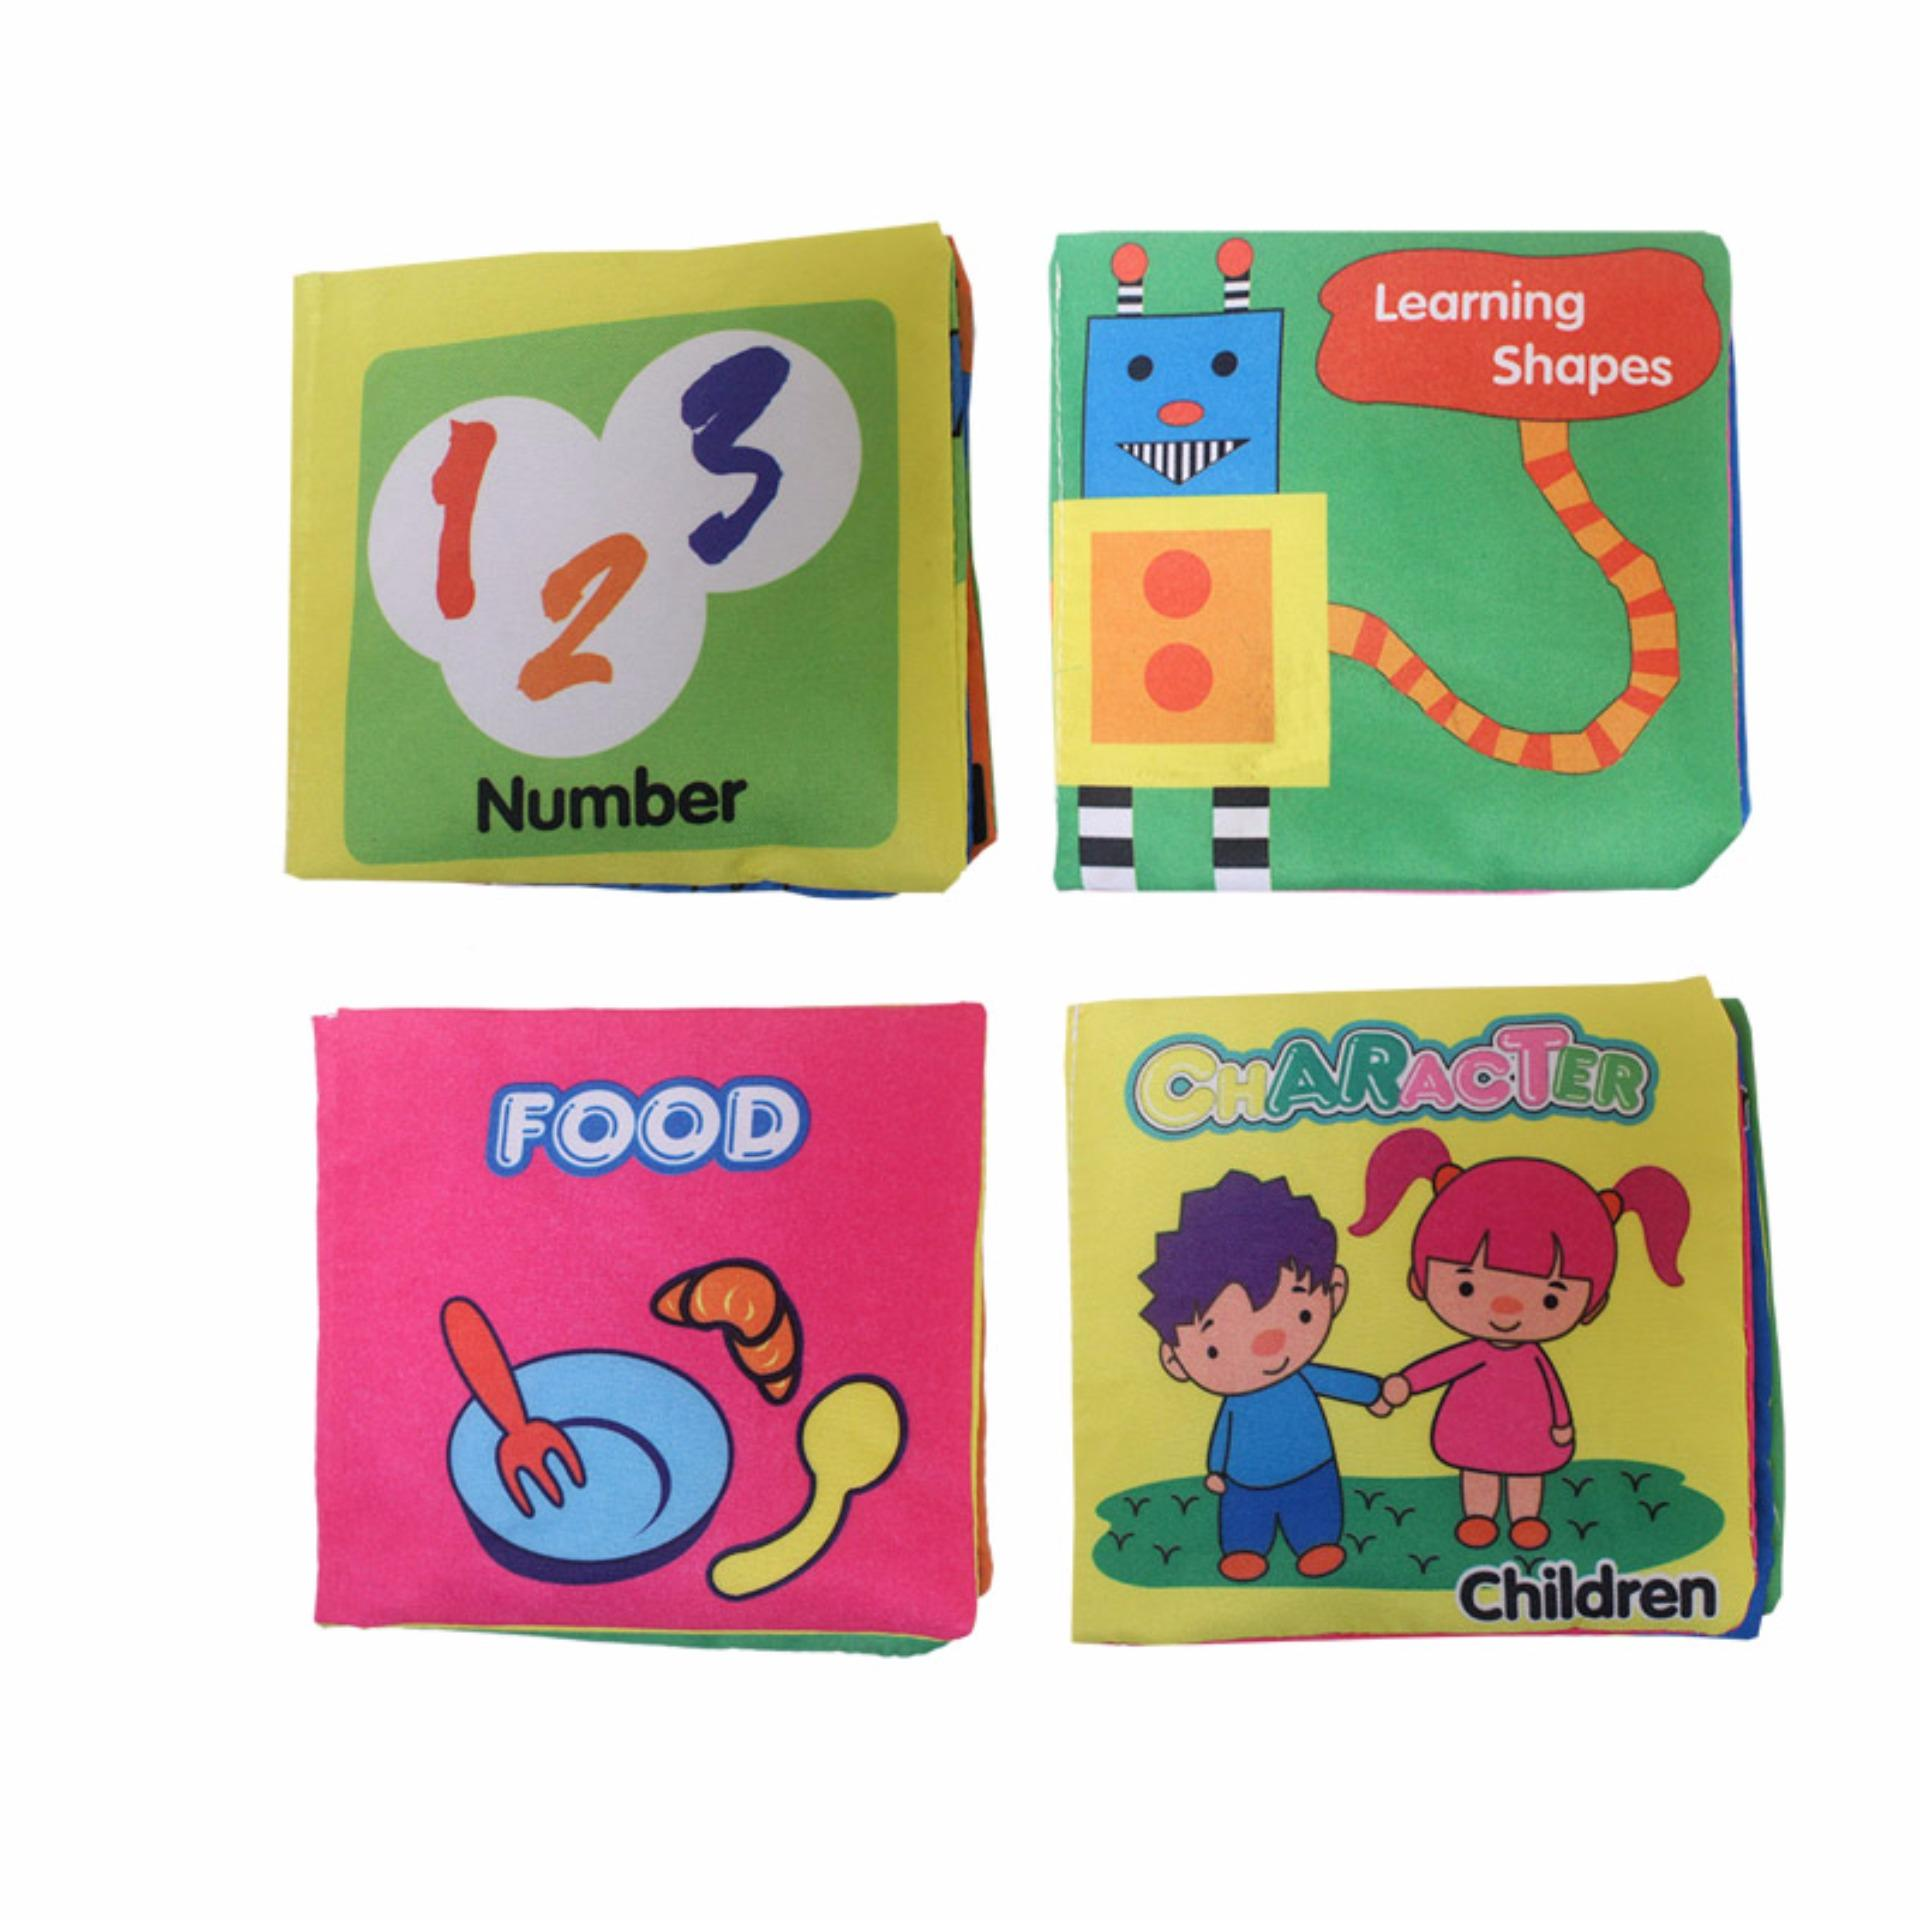 EELIC AYI-BU01 1 SET = 4 PCS NUMBER, SHAPES, FOOD, CHARACTER BABY BOOK MAINAN BUKU BAYI KAIN